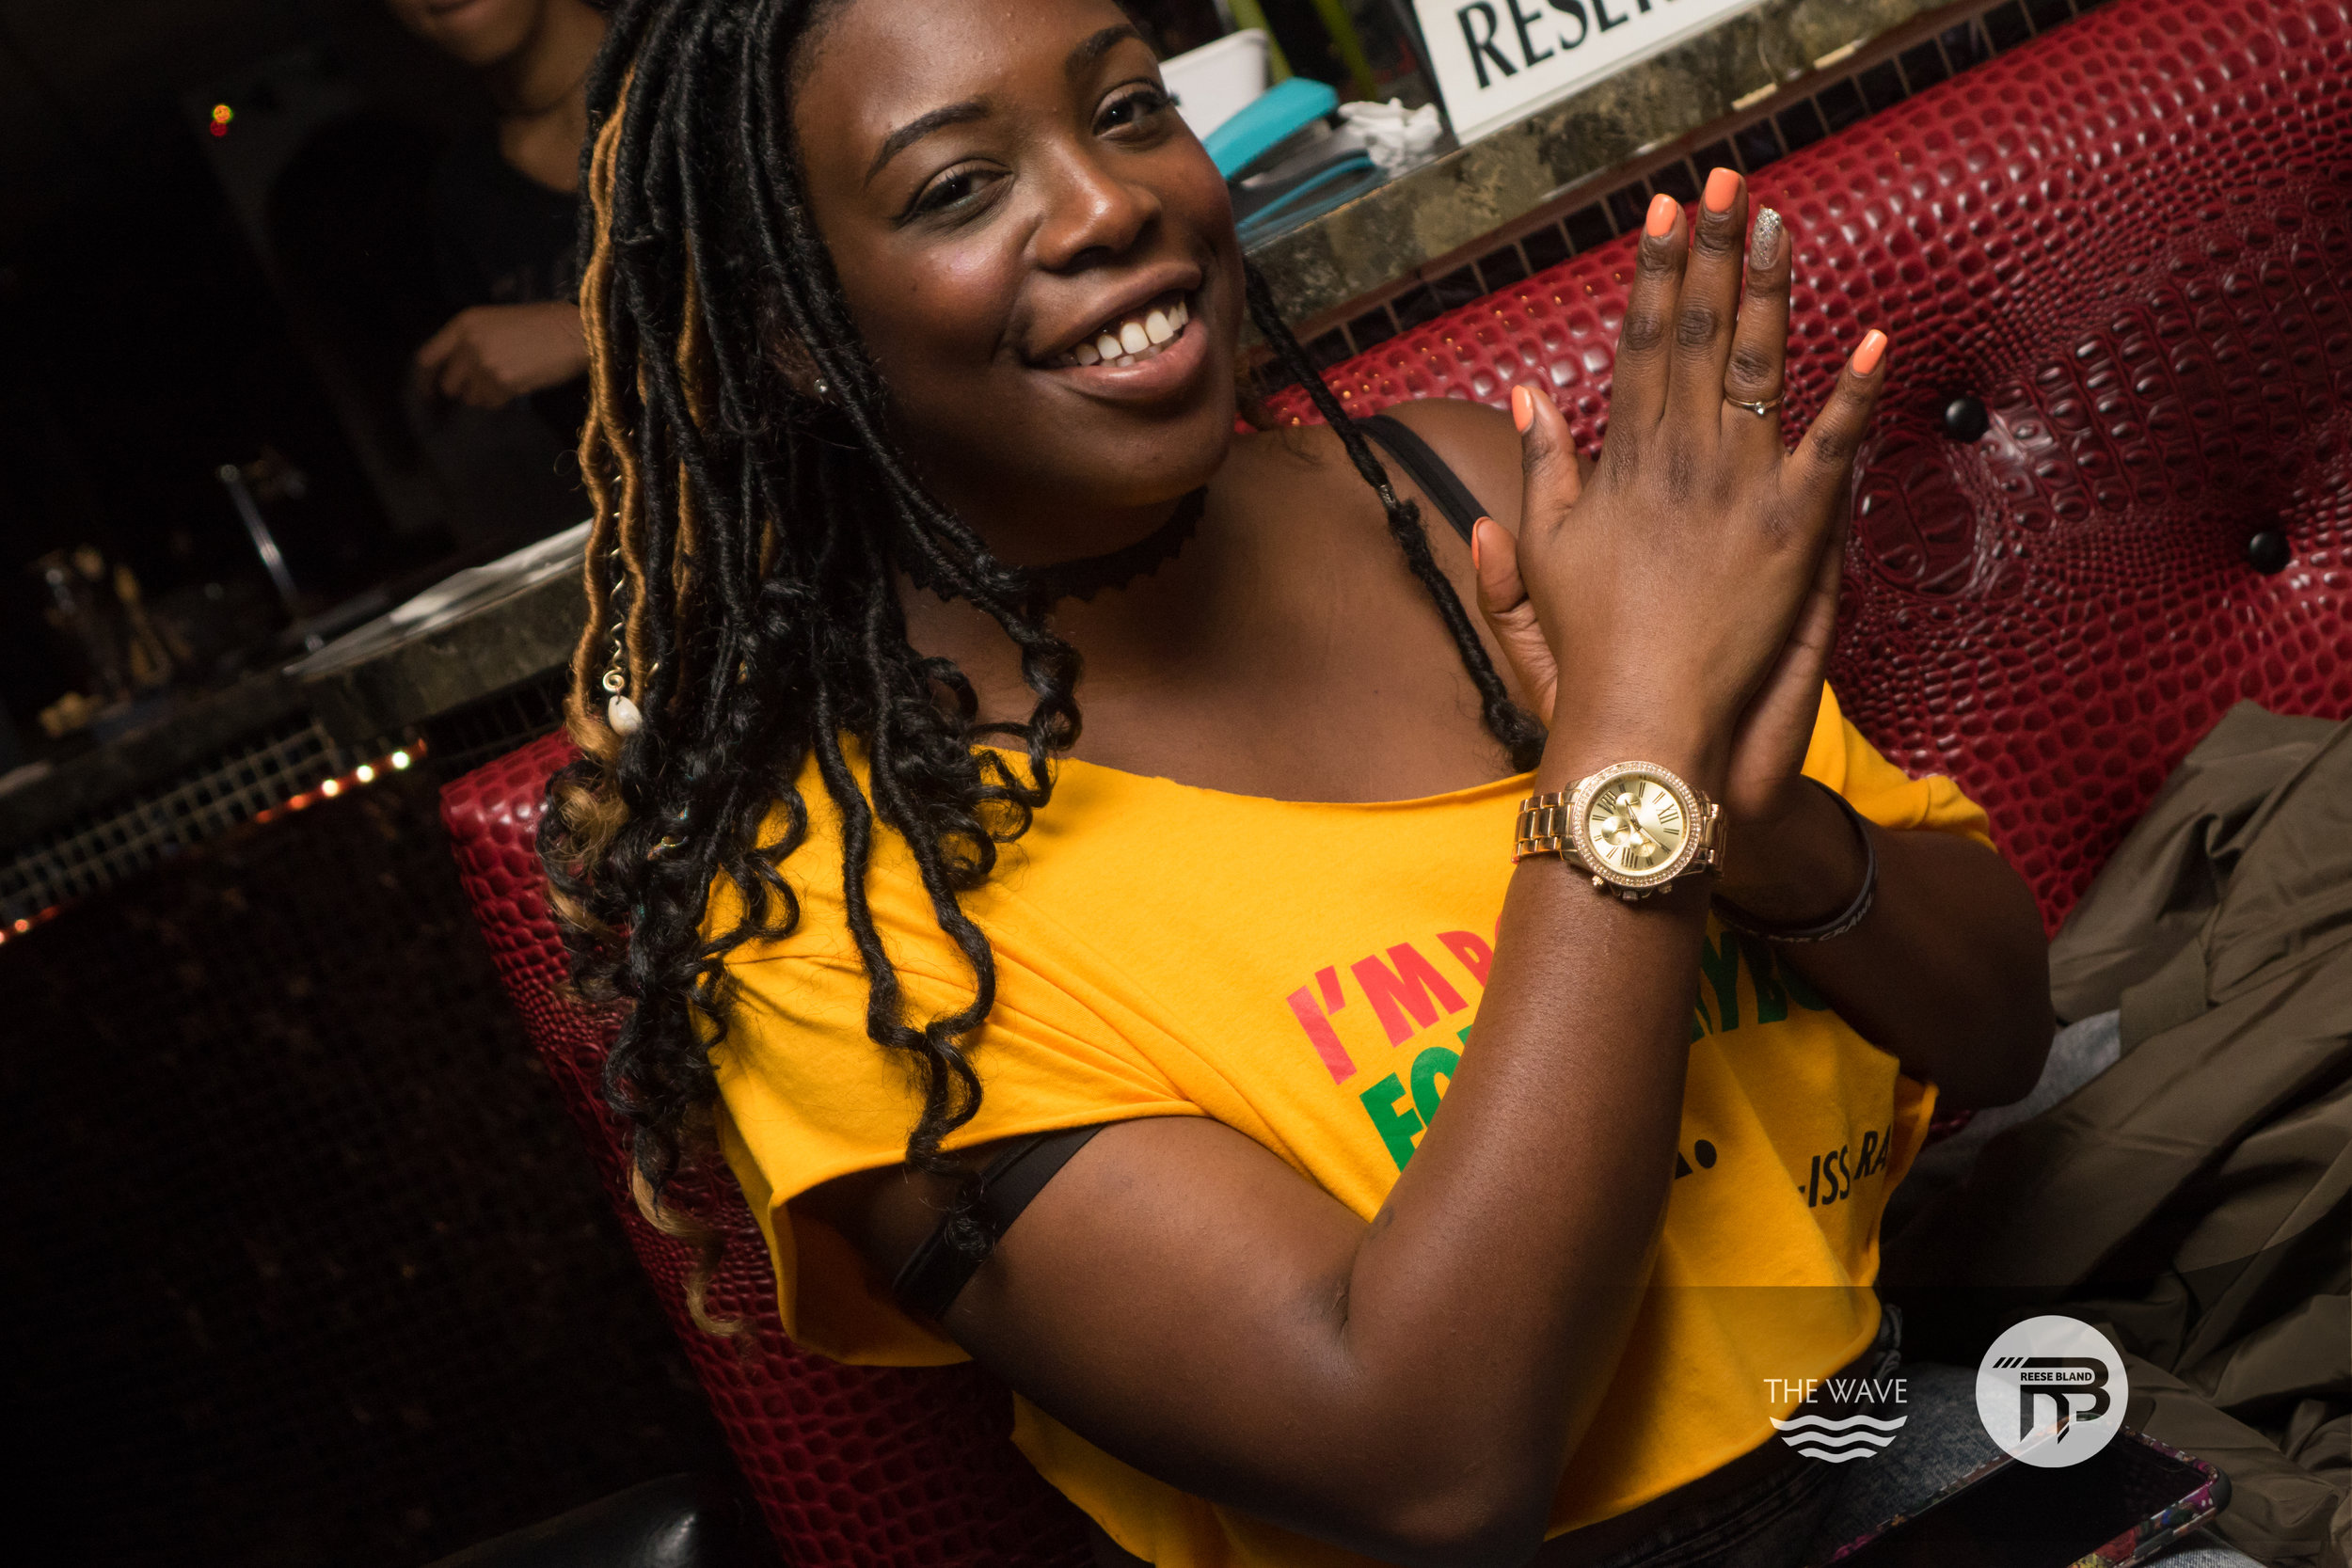 WaveDC-BlackBarCrawl-2-2018-07100.jpg